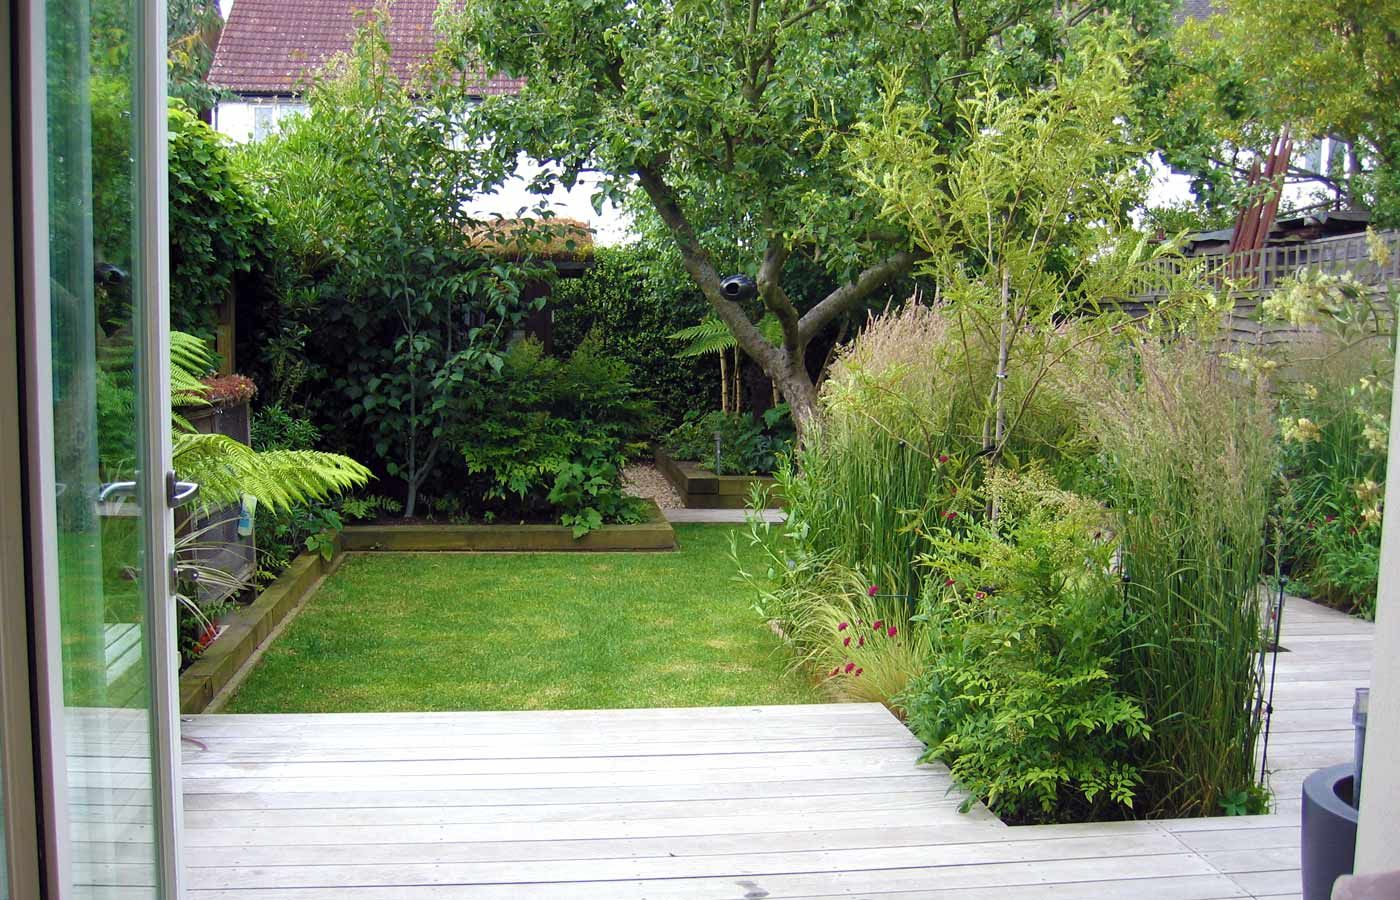 Small Trees For Lawn | Lawn And Decing In Small North London Garden